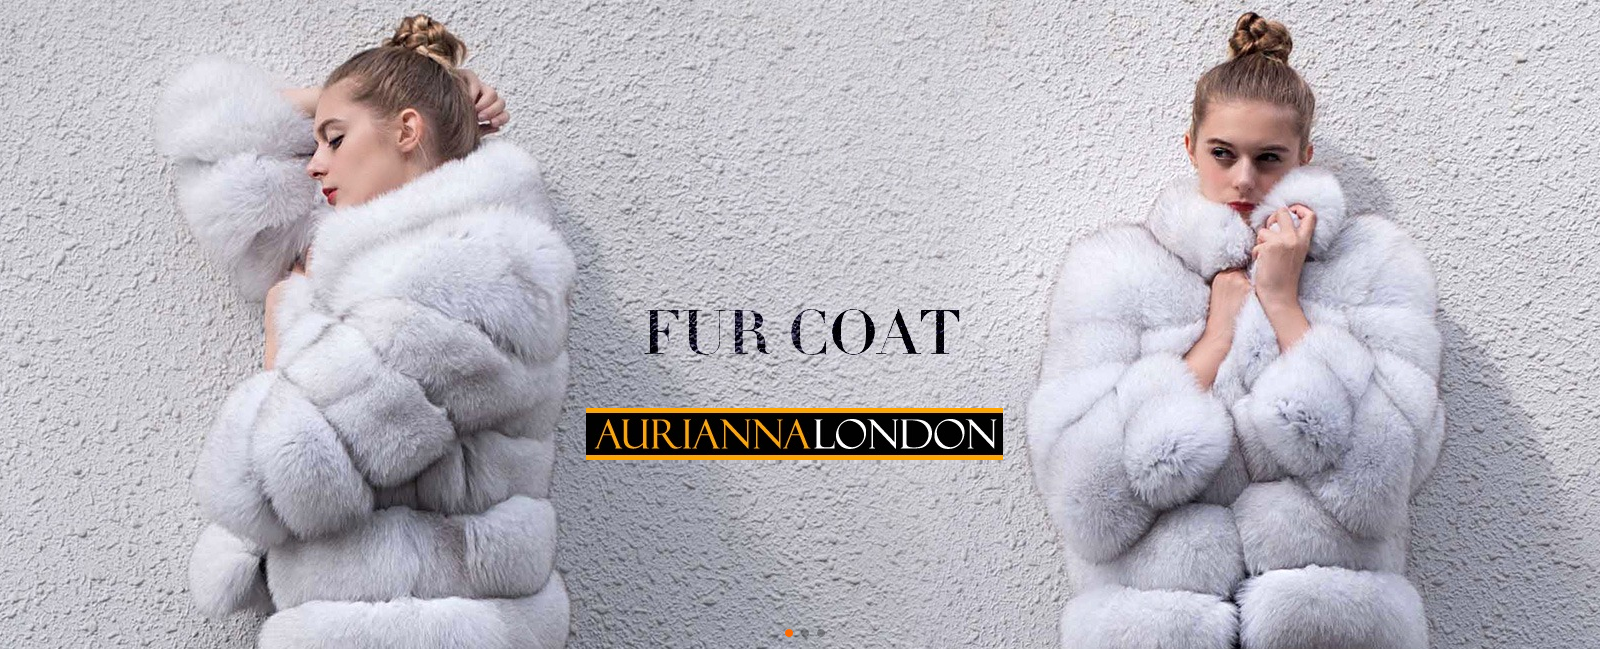 Aurianna London Fur Coat